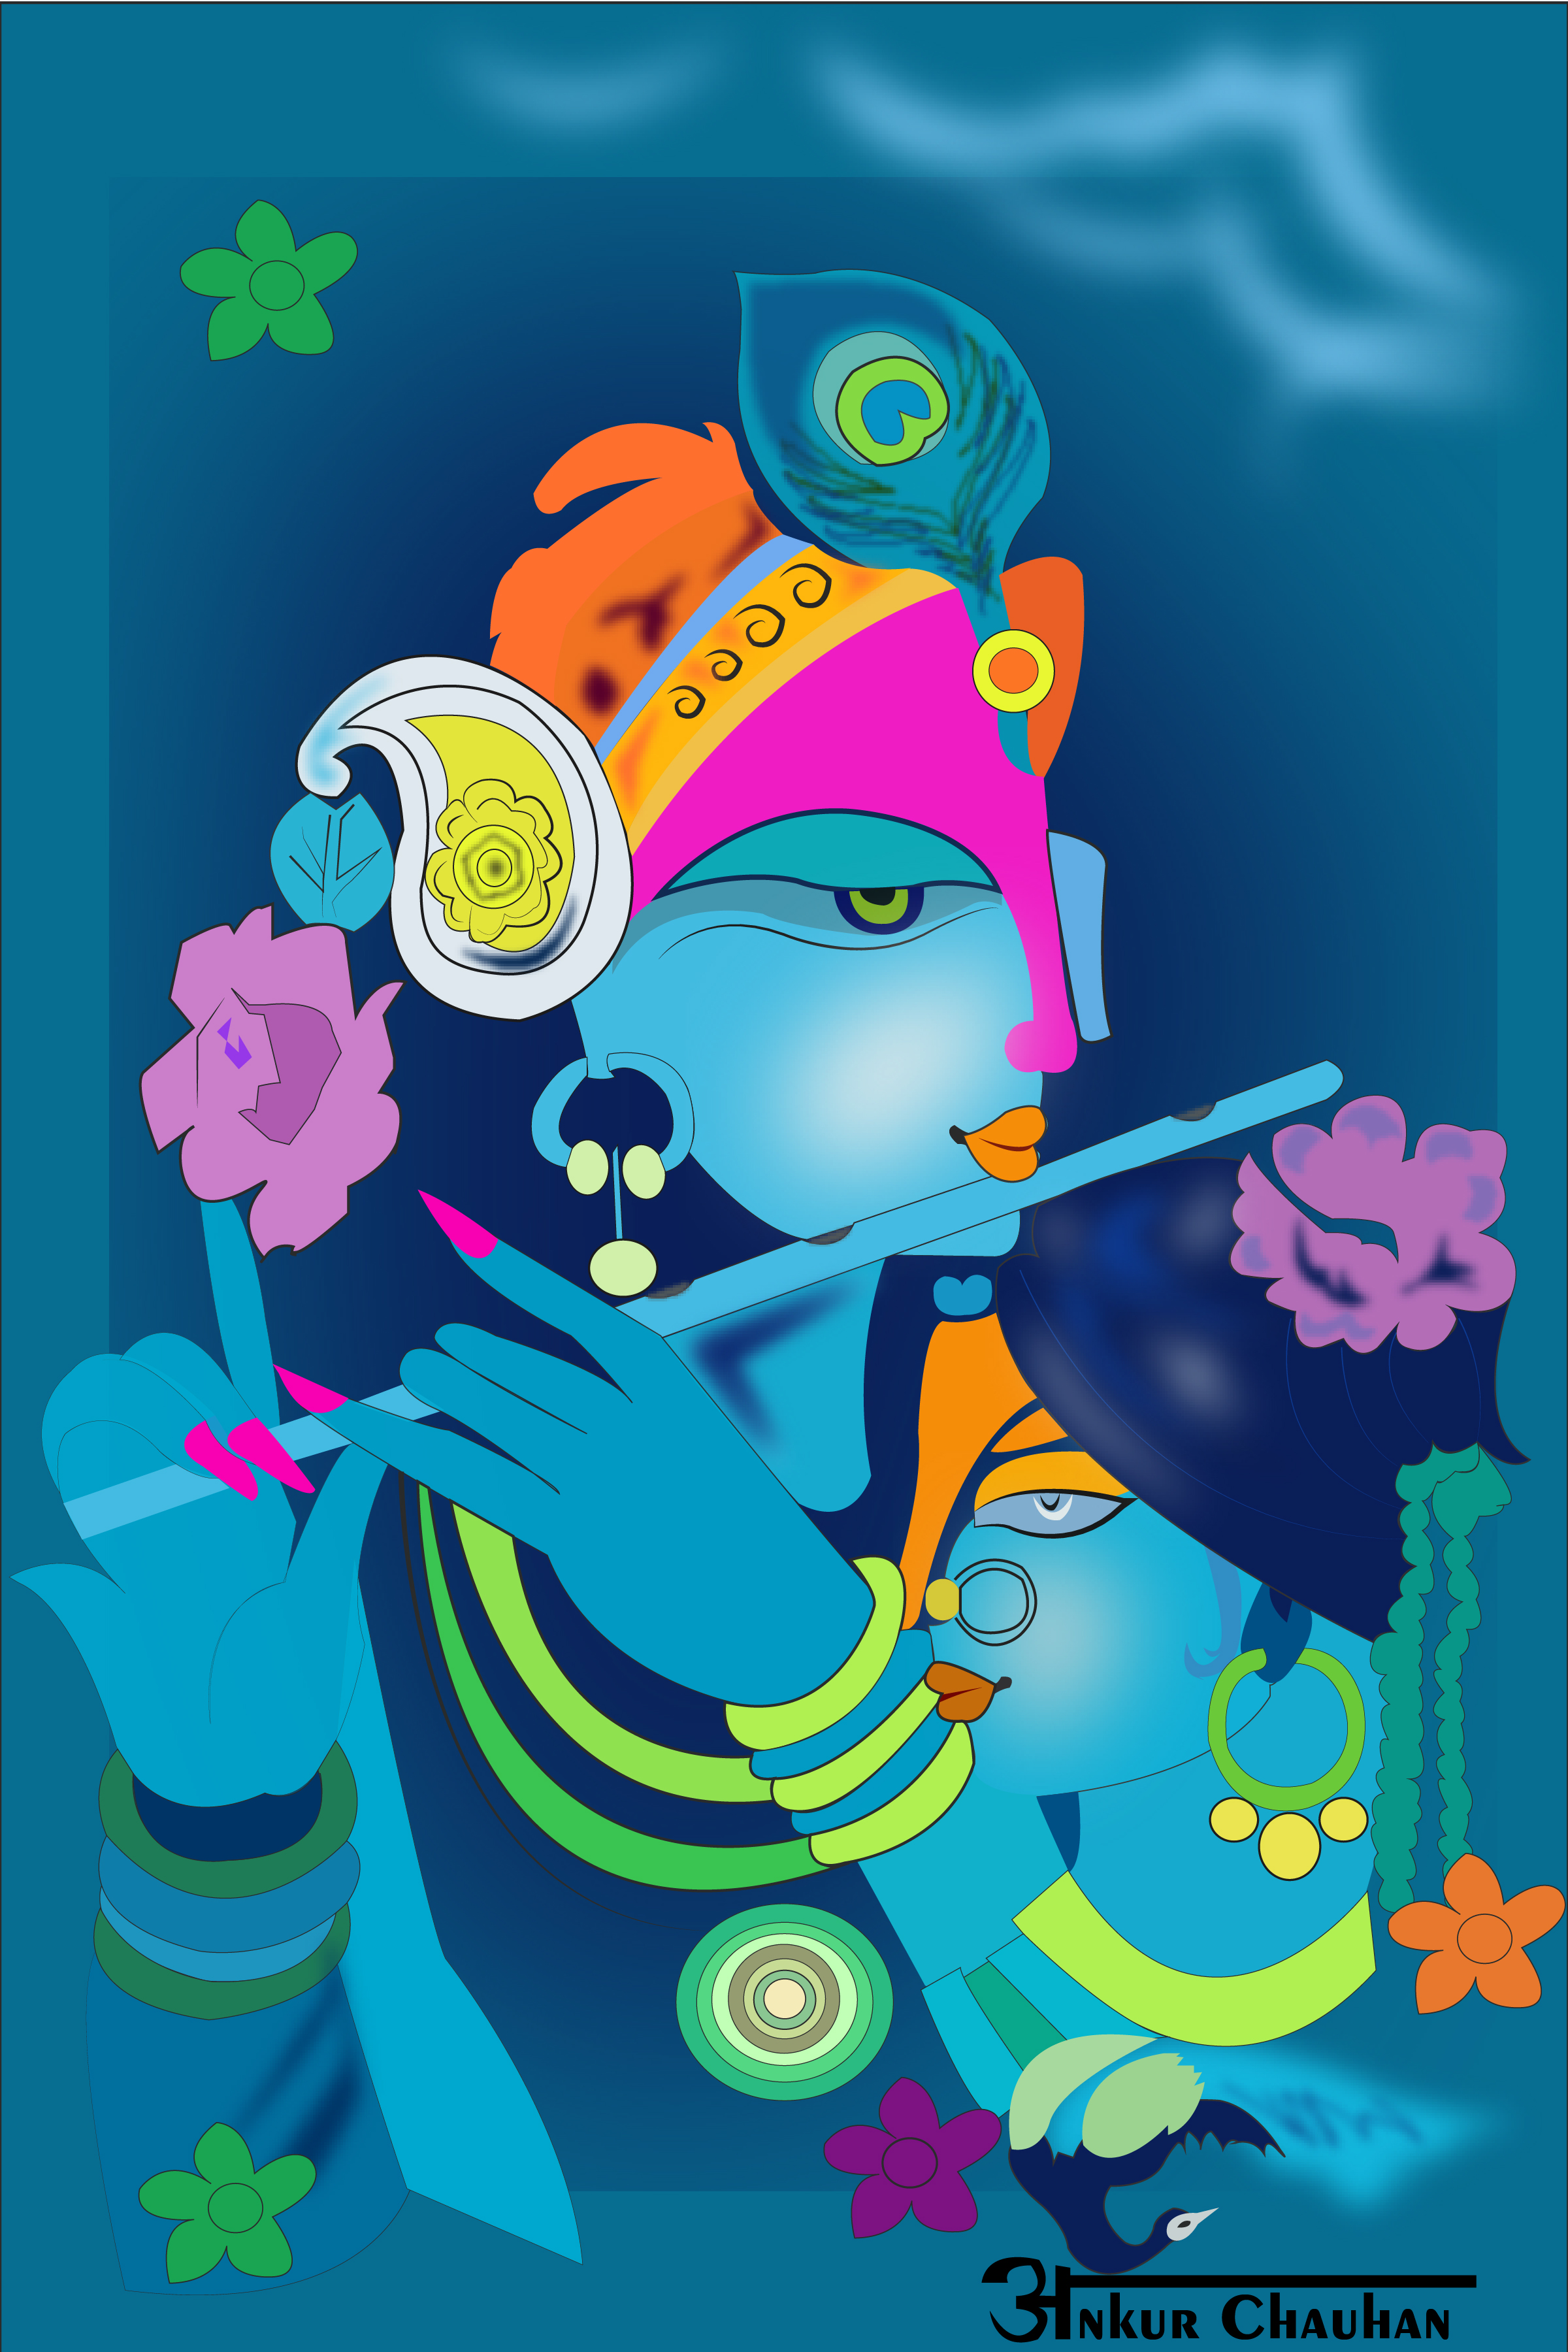 Radha Krishna illustration